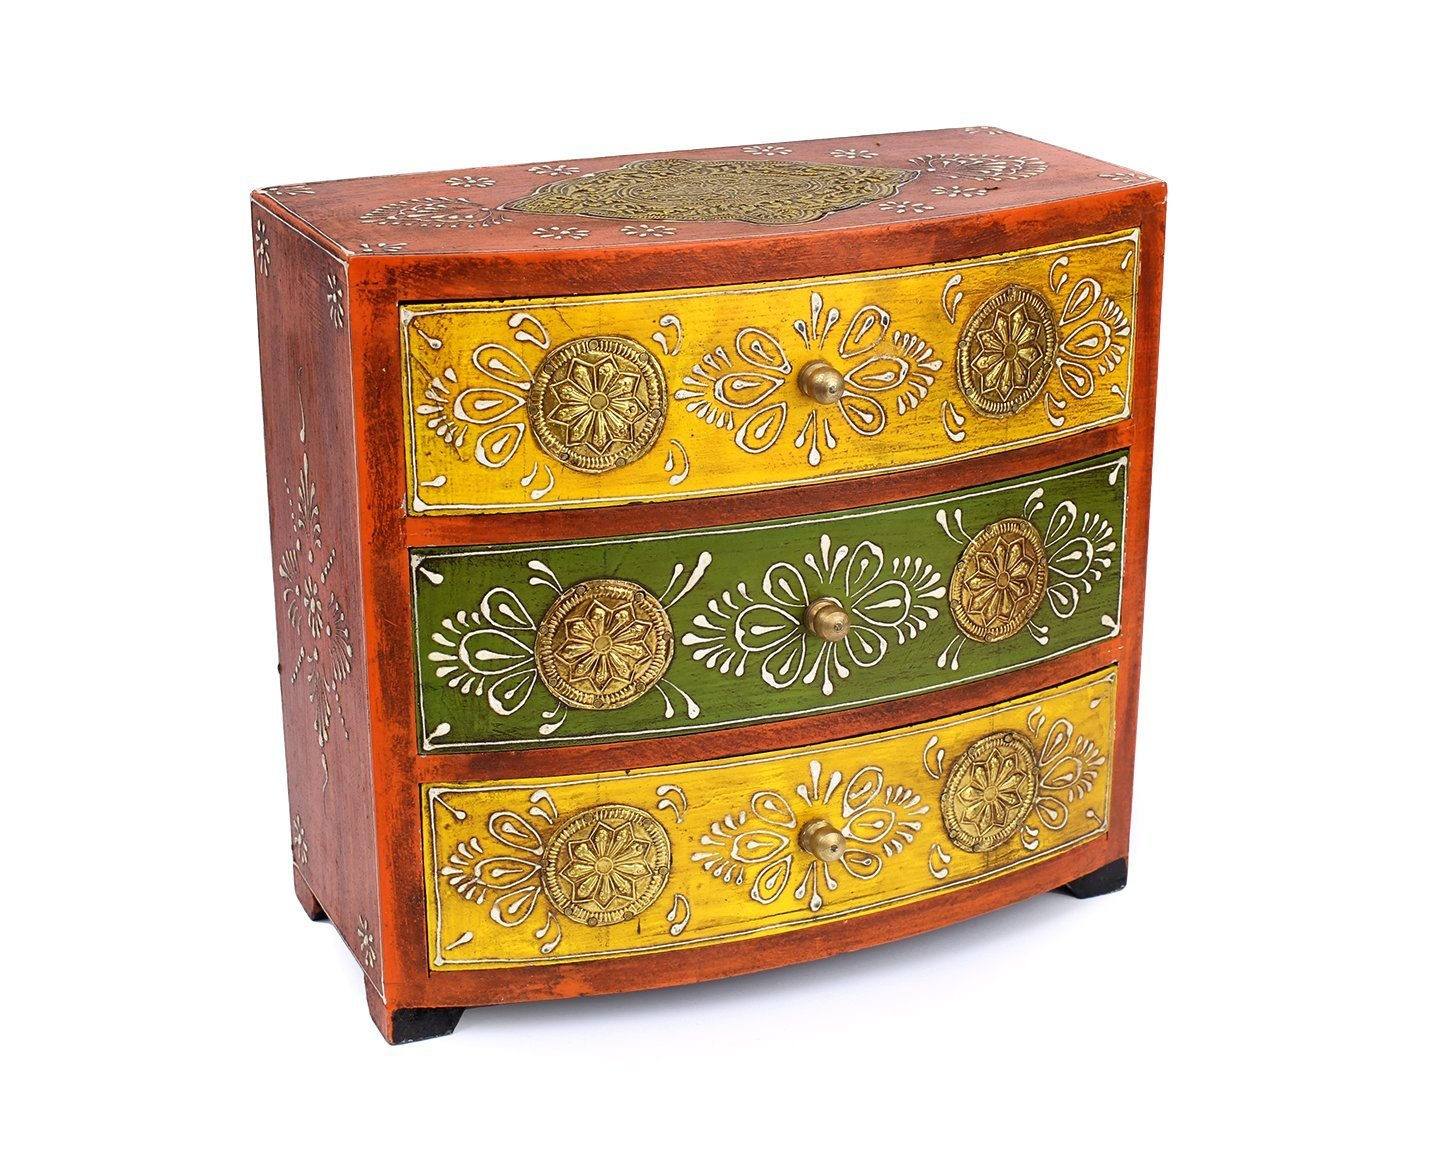 Royal Chest of 3 Drawers with Embossed Hand Painted Floral Patterns Multi-purpose Holder